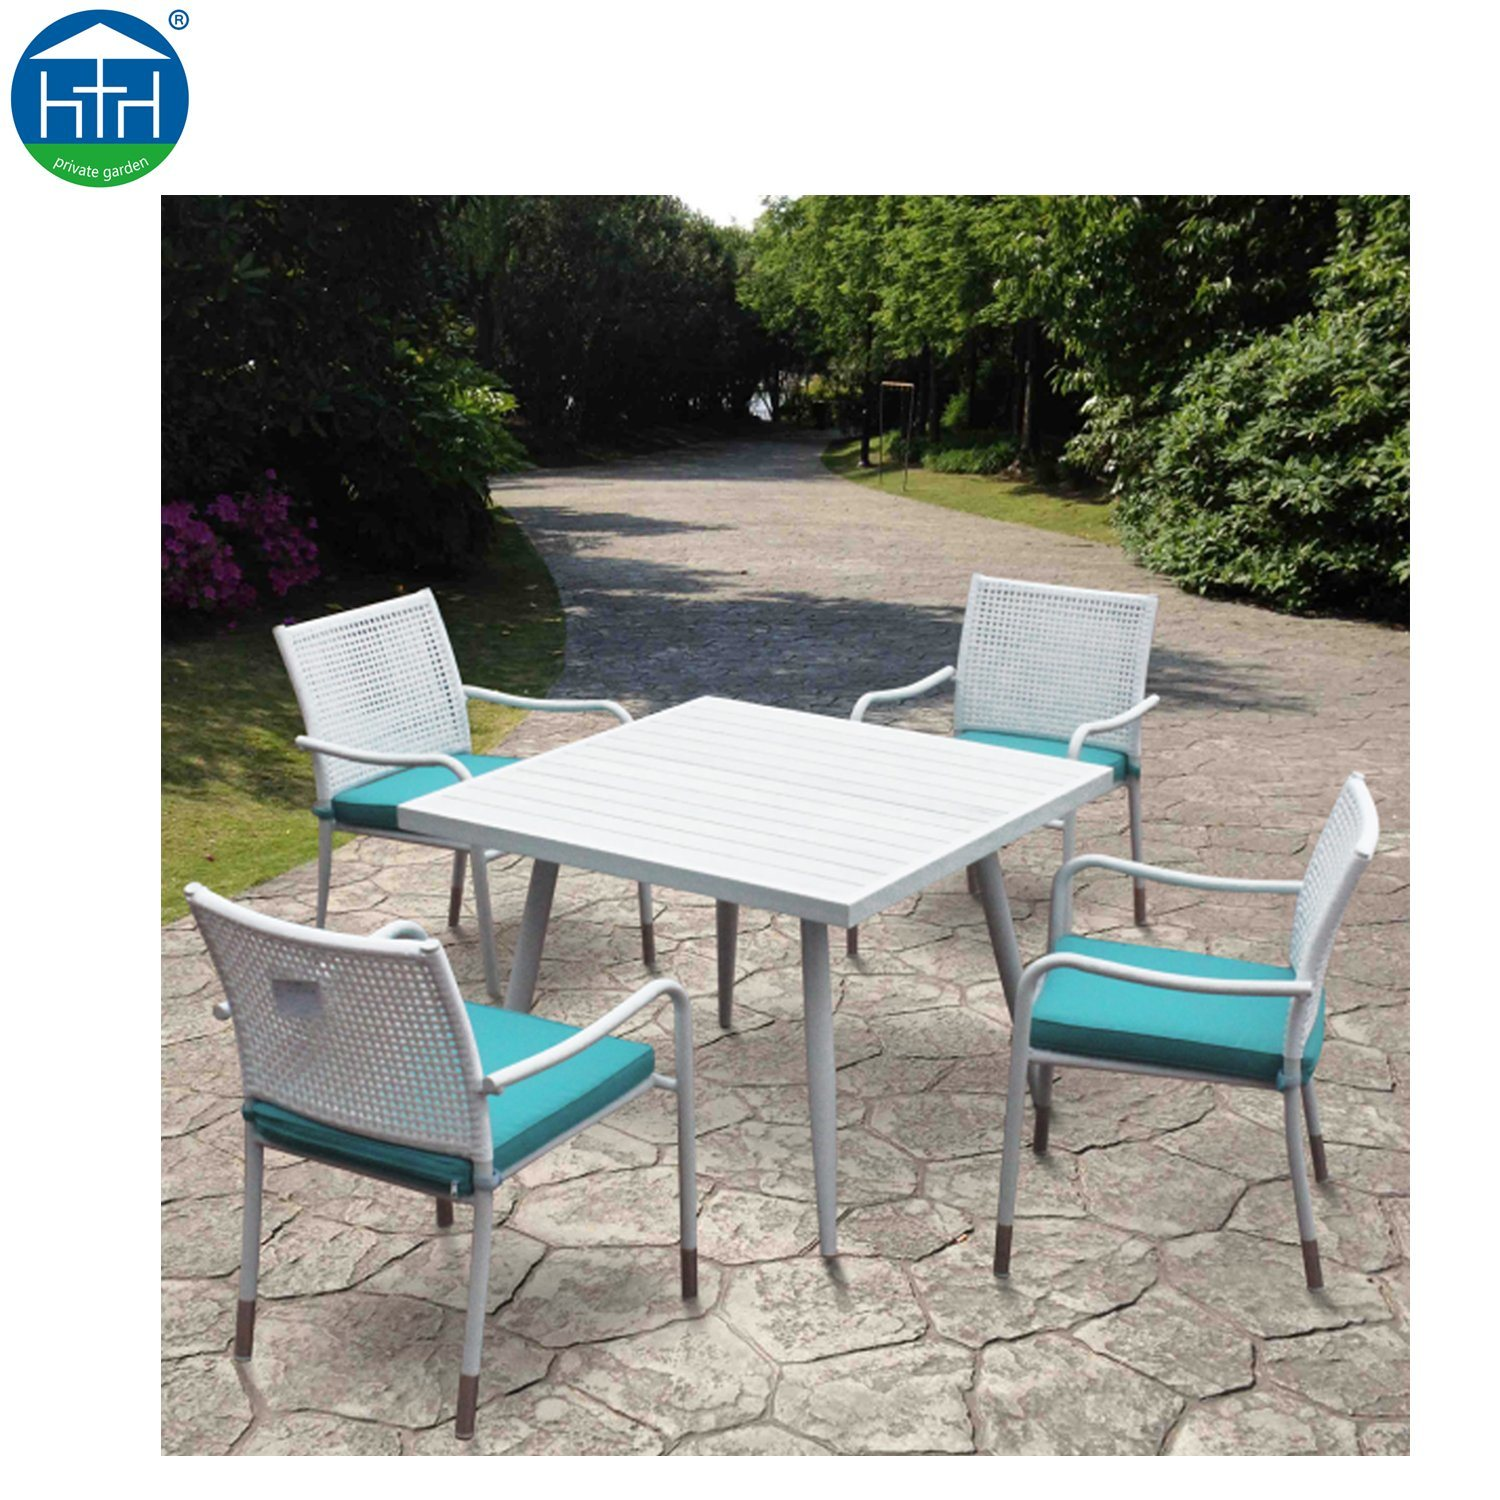 Patio Furniture Table And Chairs Hot Item Popular Outdoor Furniture Cheap Rattan Table And Chair